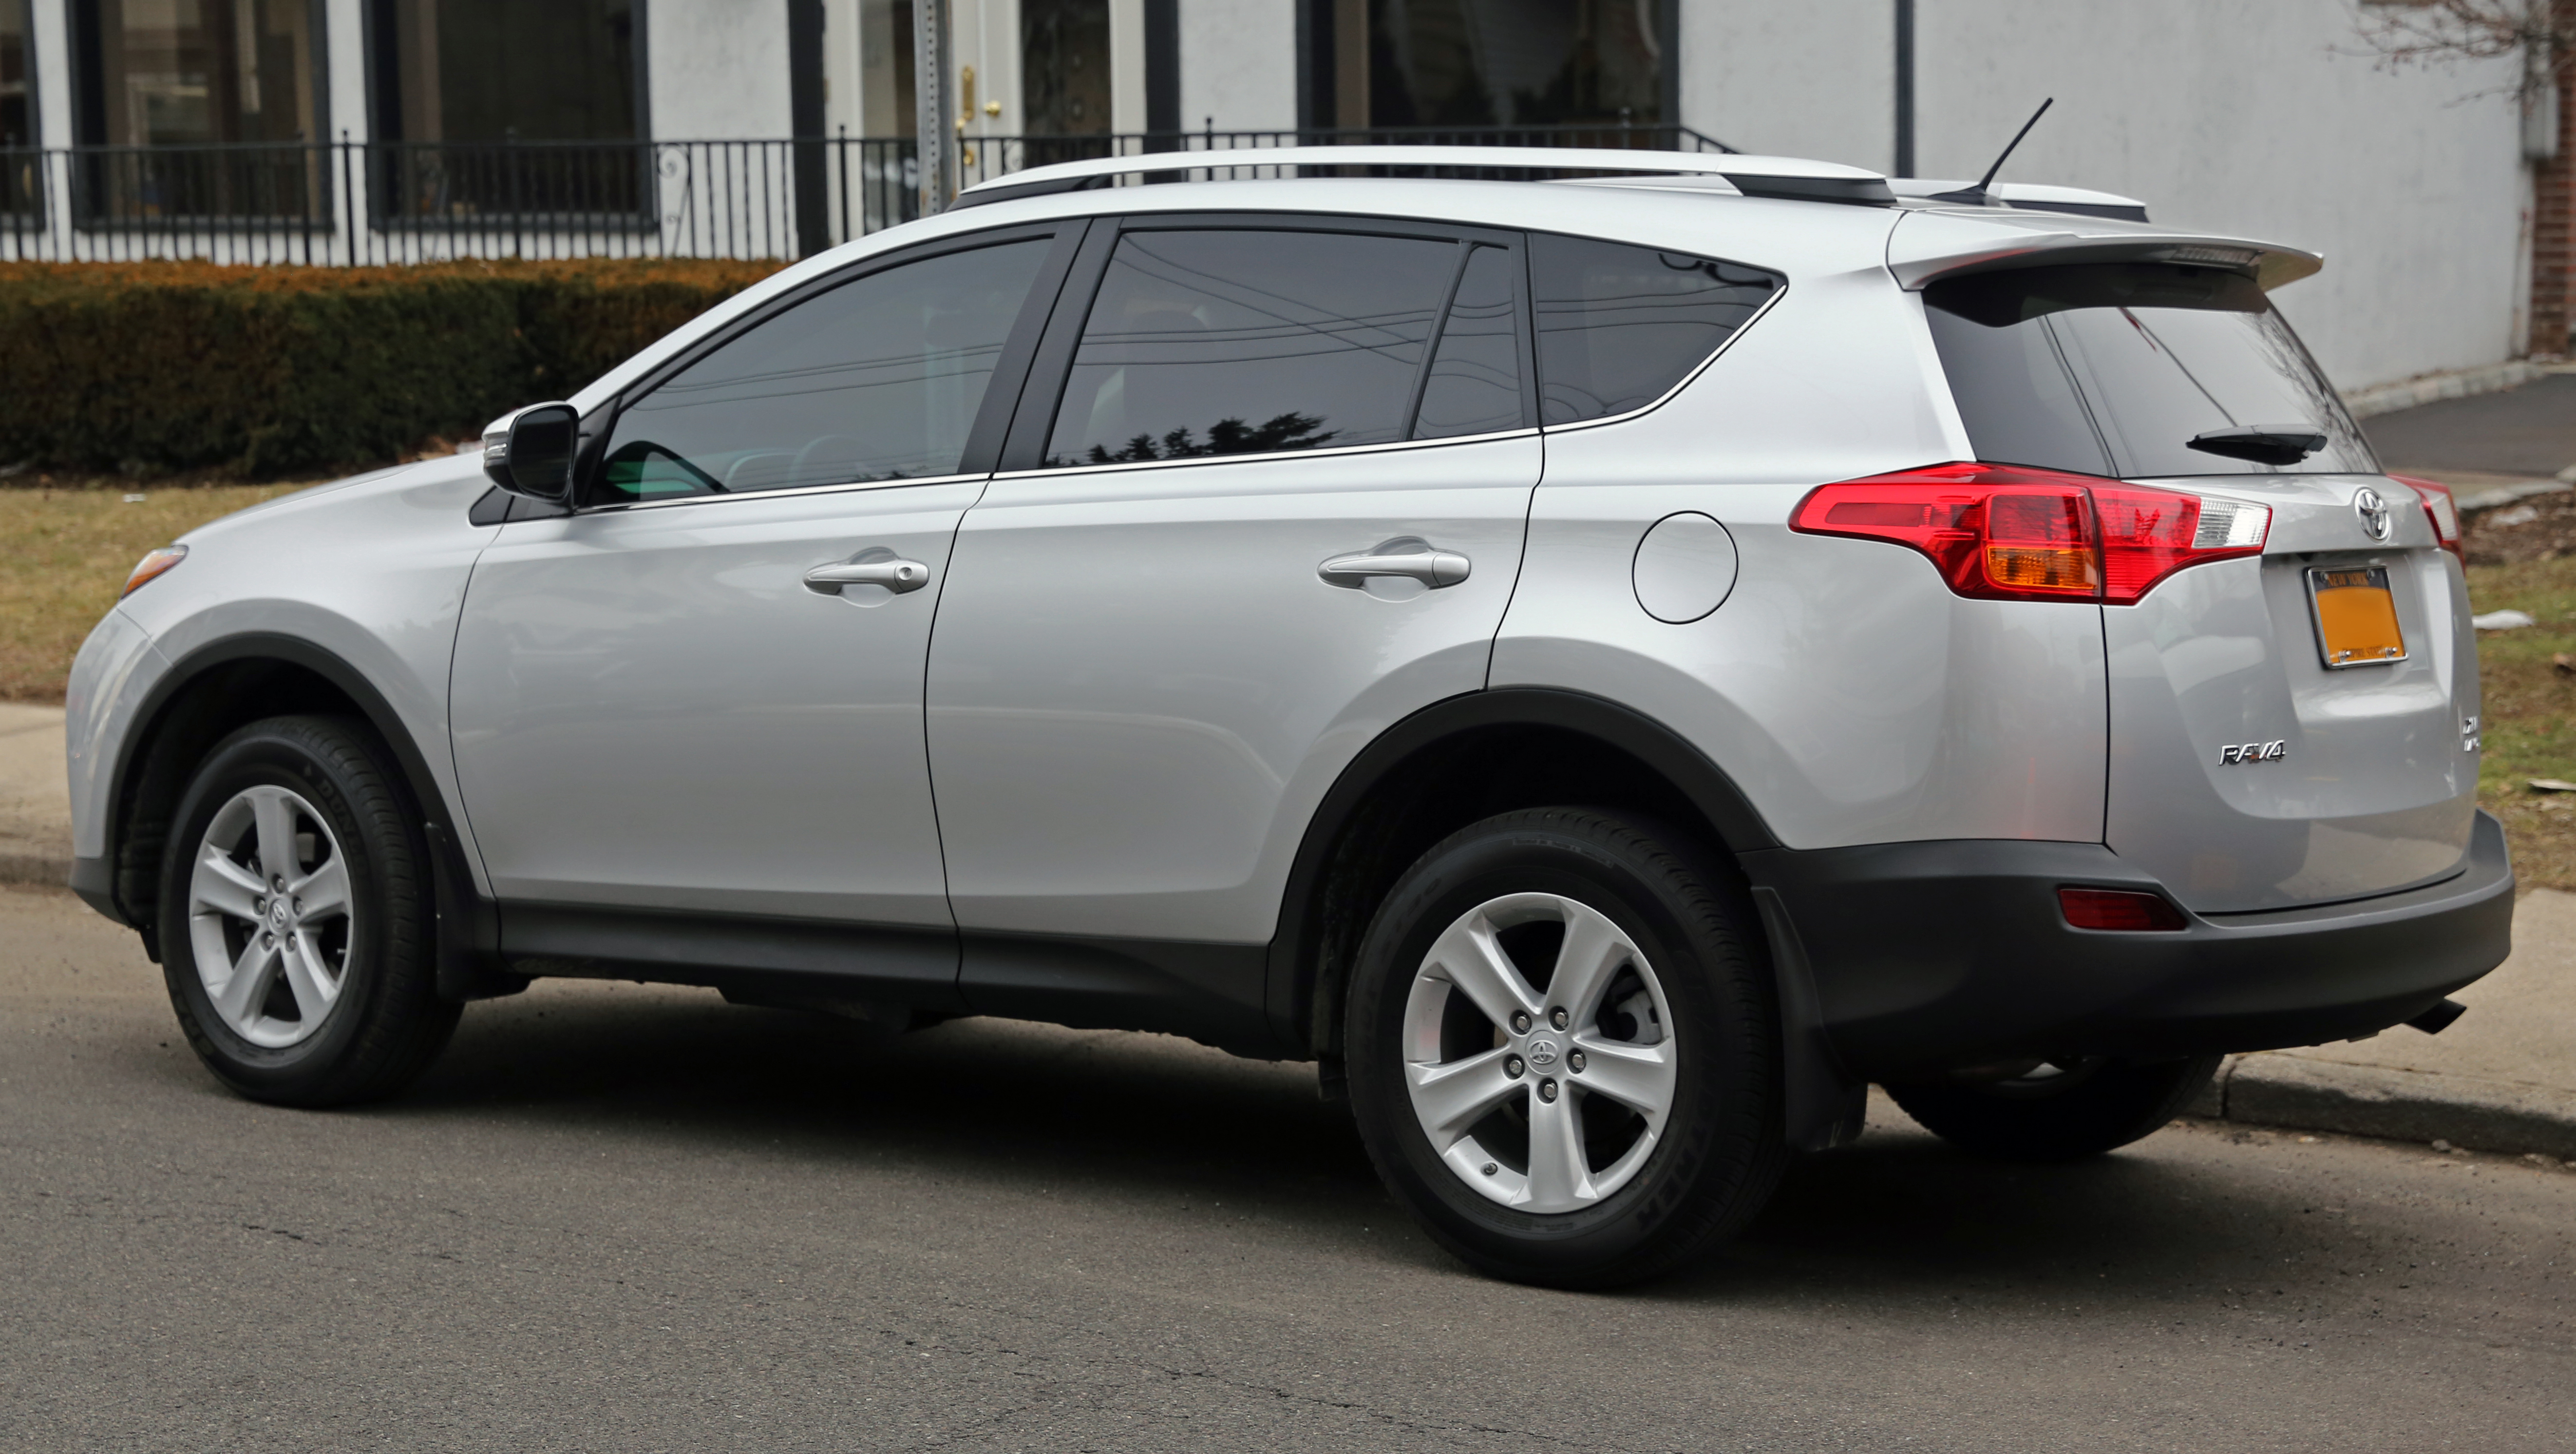 file 2013 toyota rav4 xle awd rear wikimedia commons. Black Bedroom Furniture Sets. Home Design Ideas